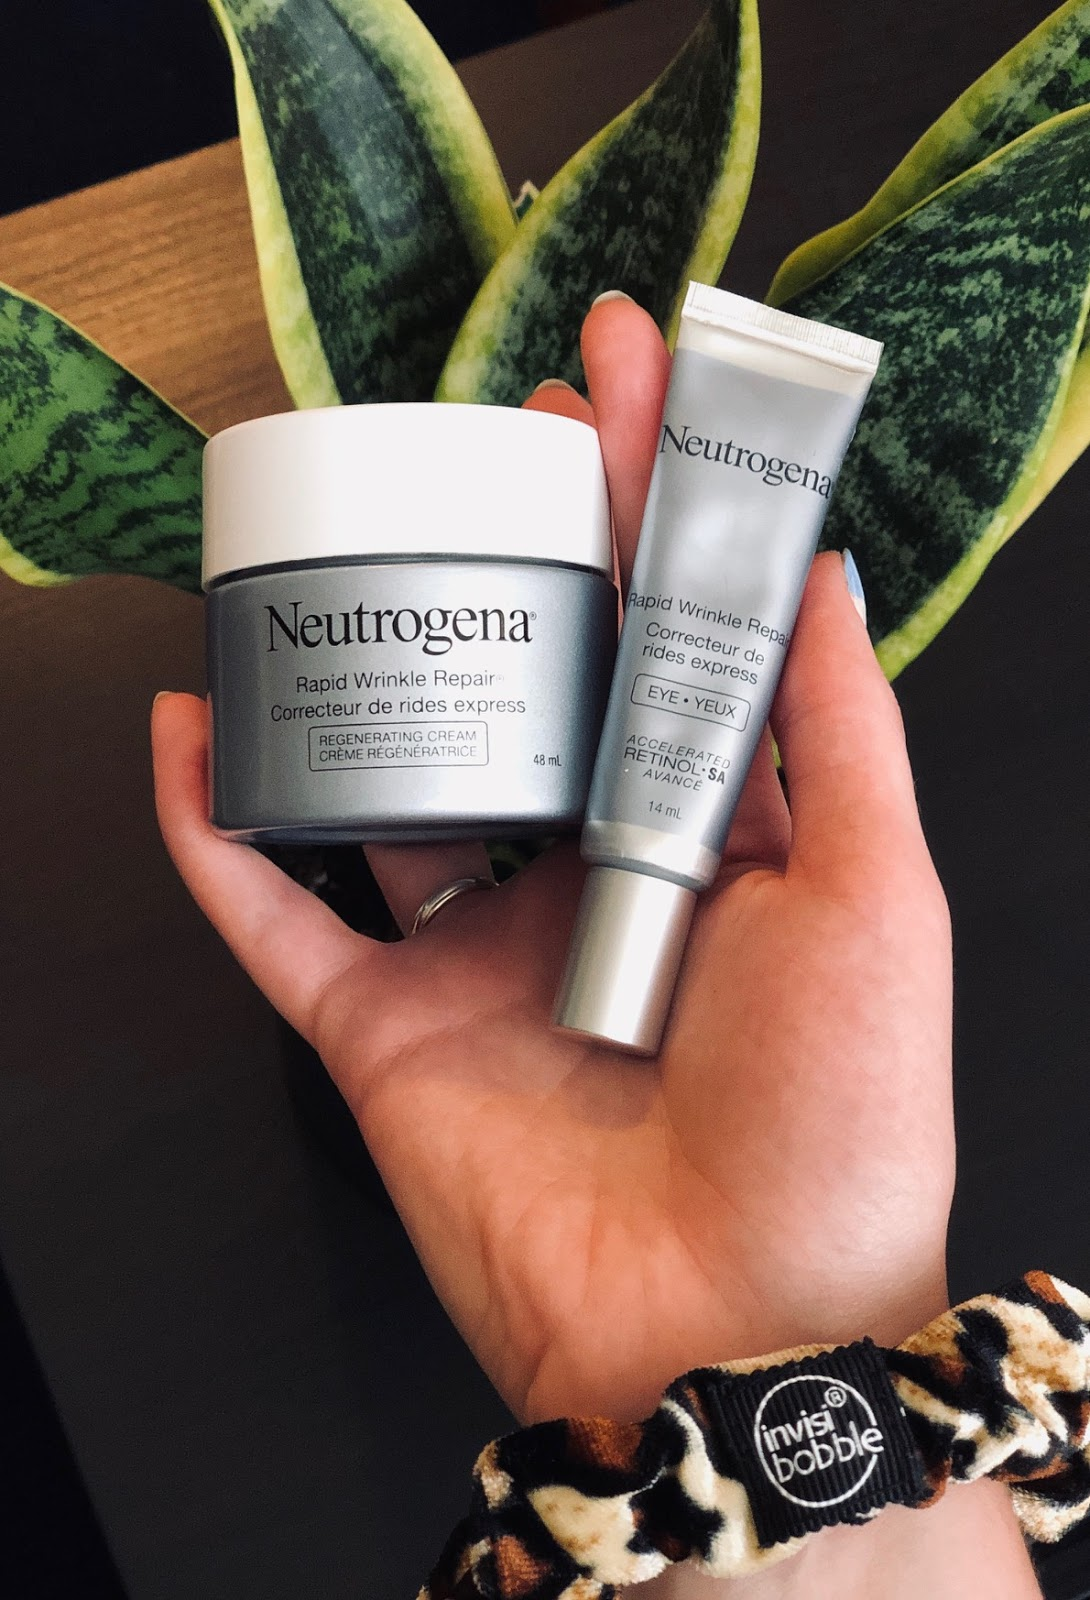 Neutrogena Rapid Wrinkle Repair Review